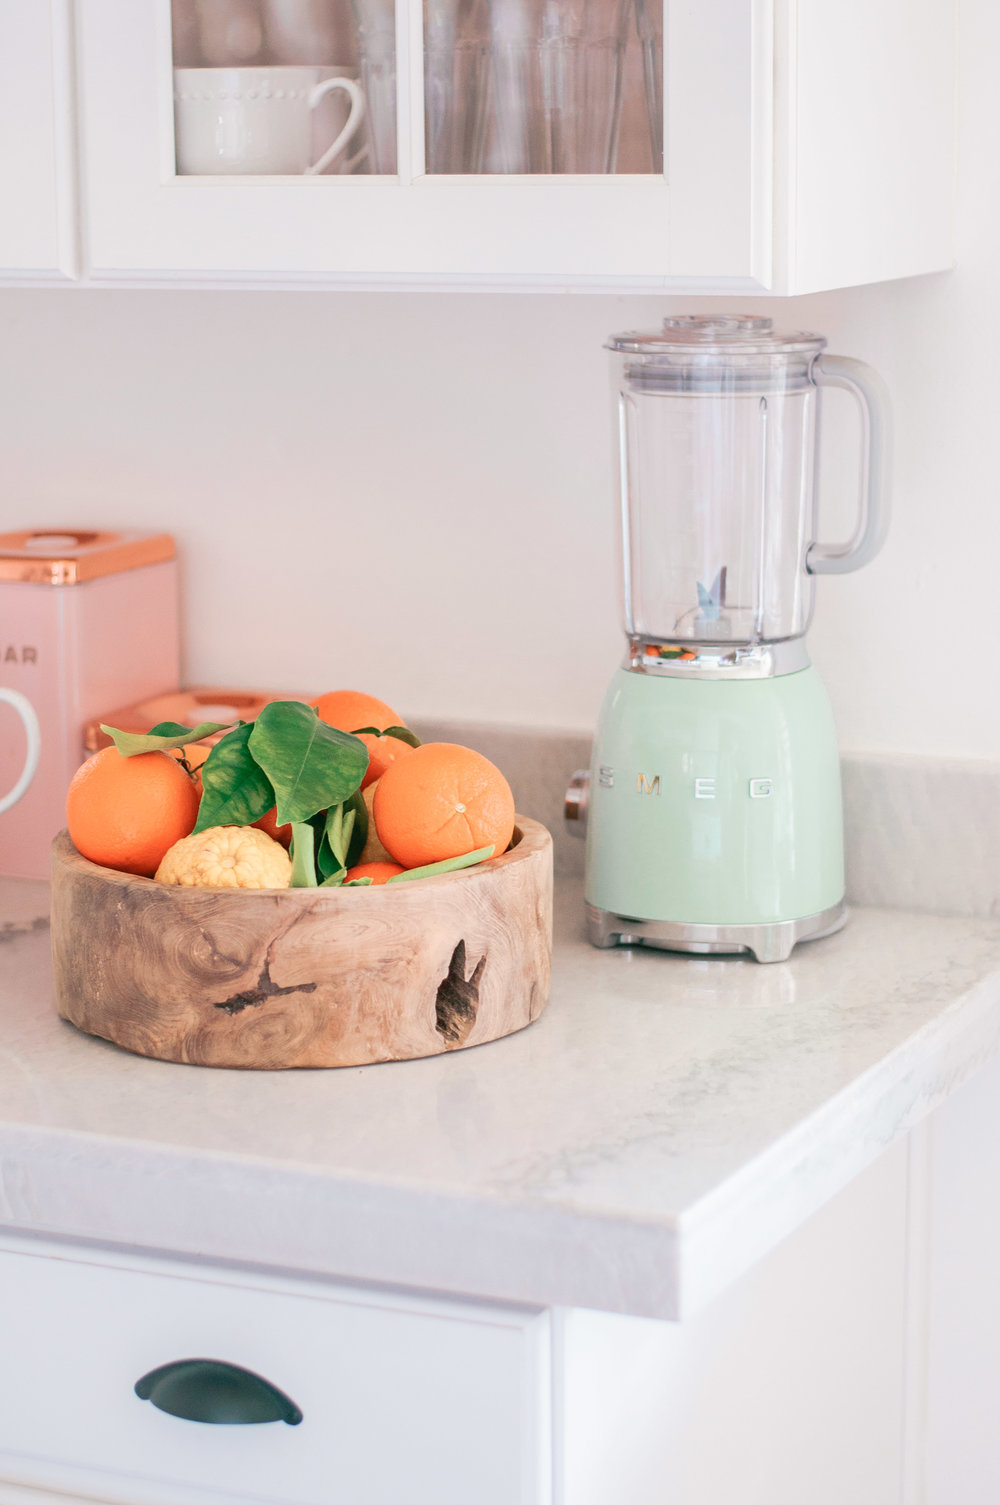 Smeg Blender in Mint